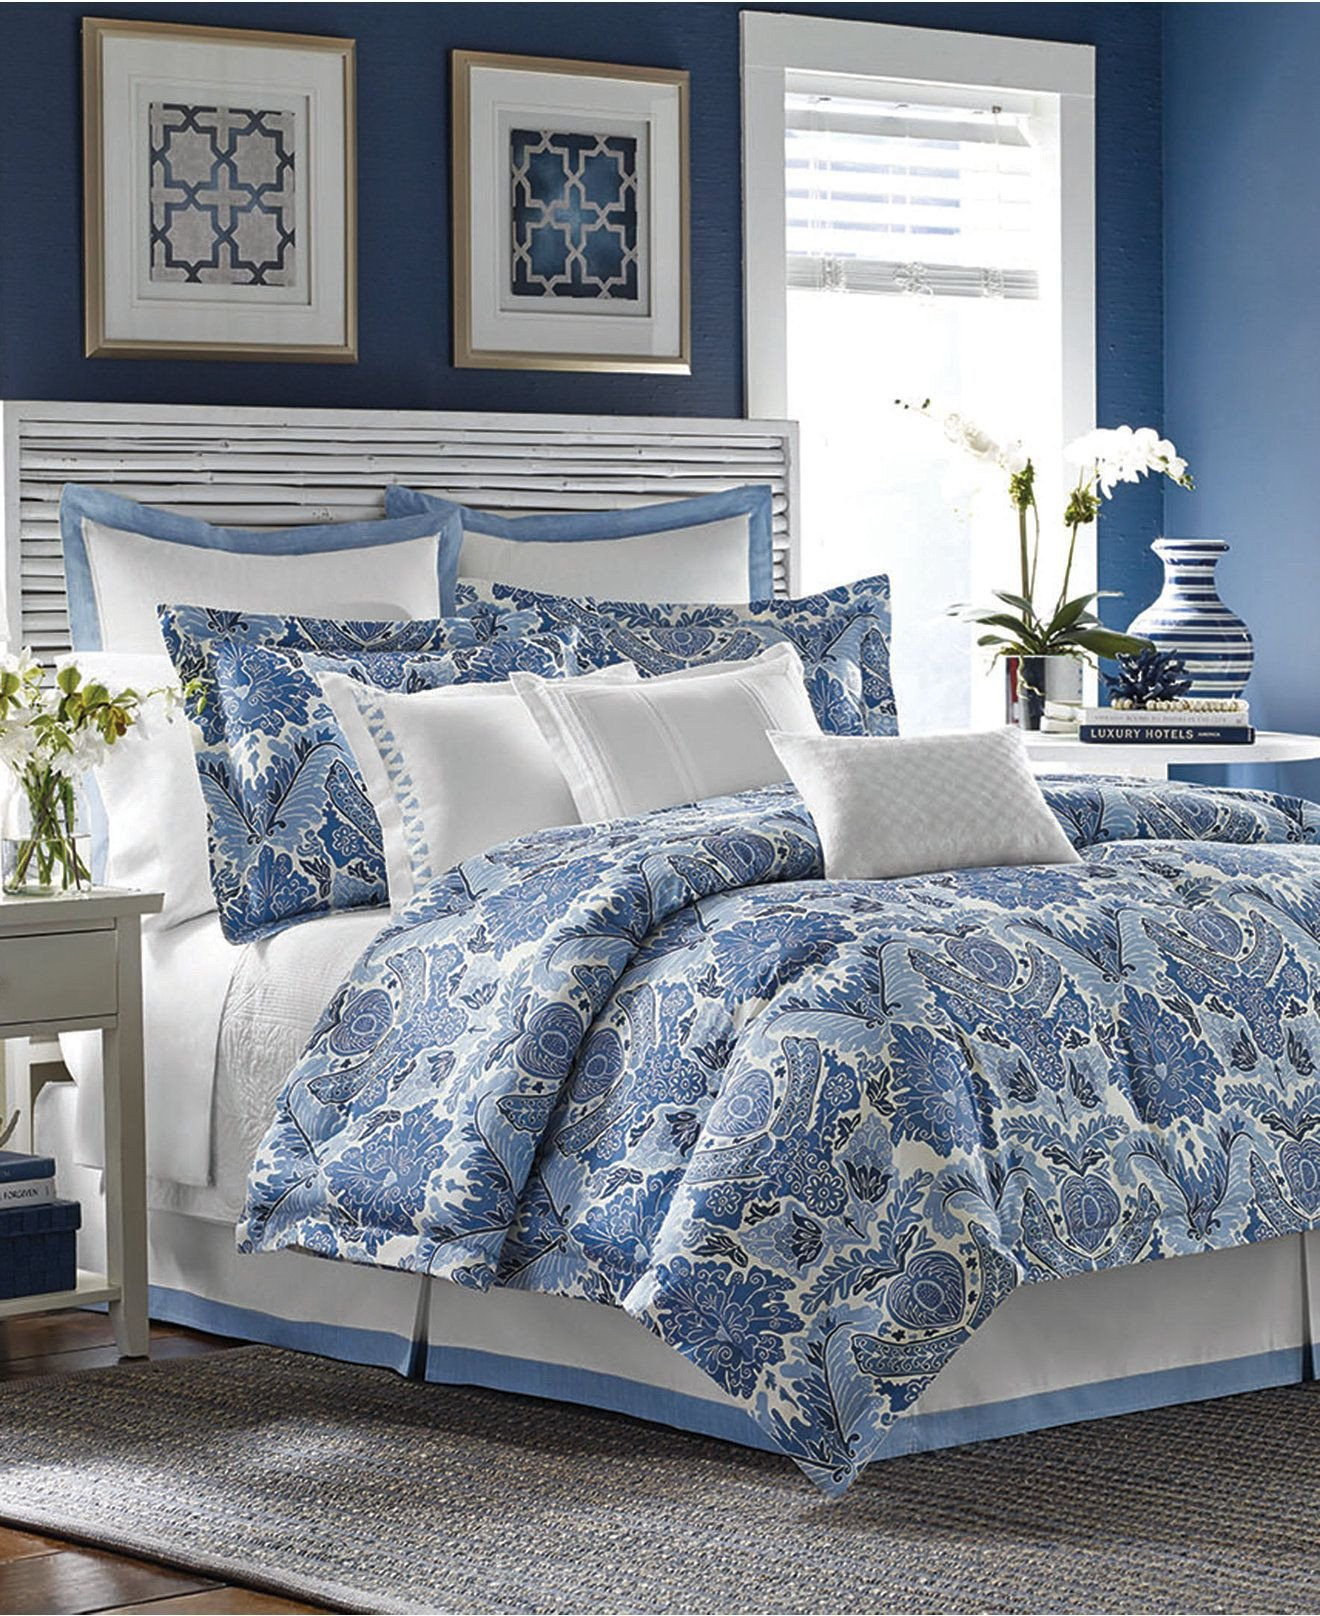 Tommy Bahama Bedroom Furniture Best Of tommy Bahama Porcelain Paradise forter and Duvet Sets